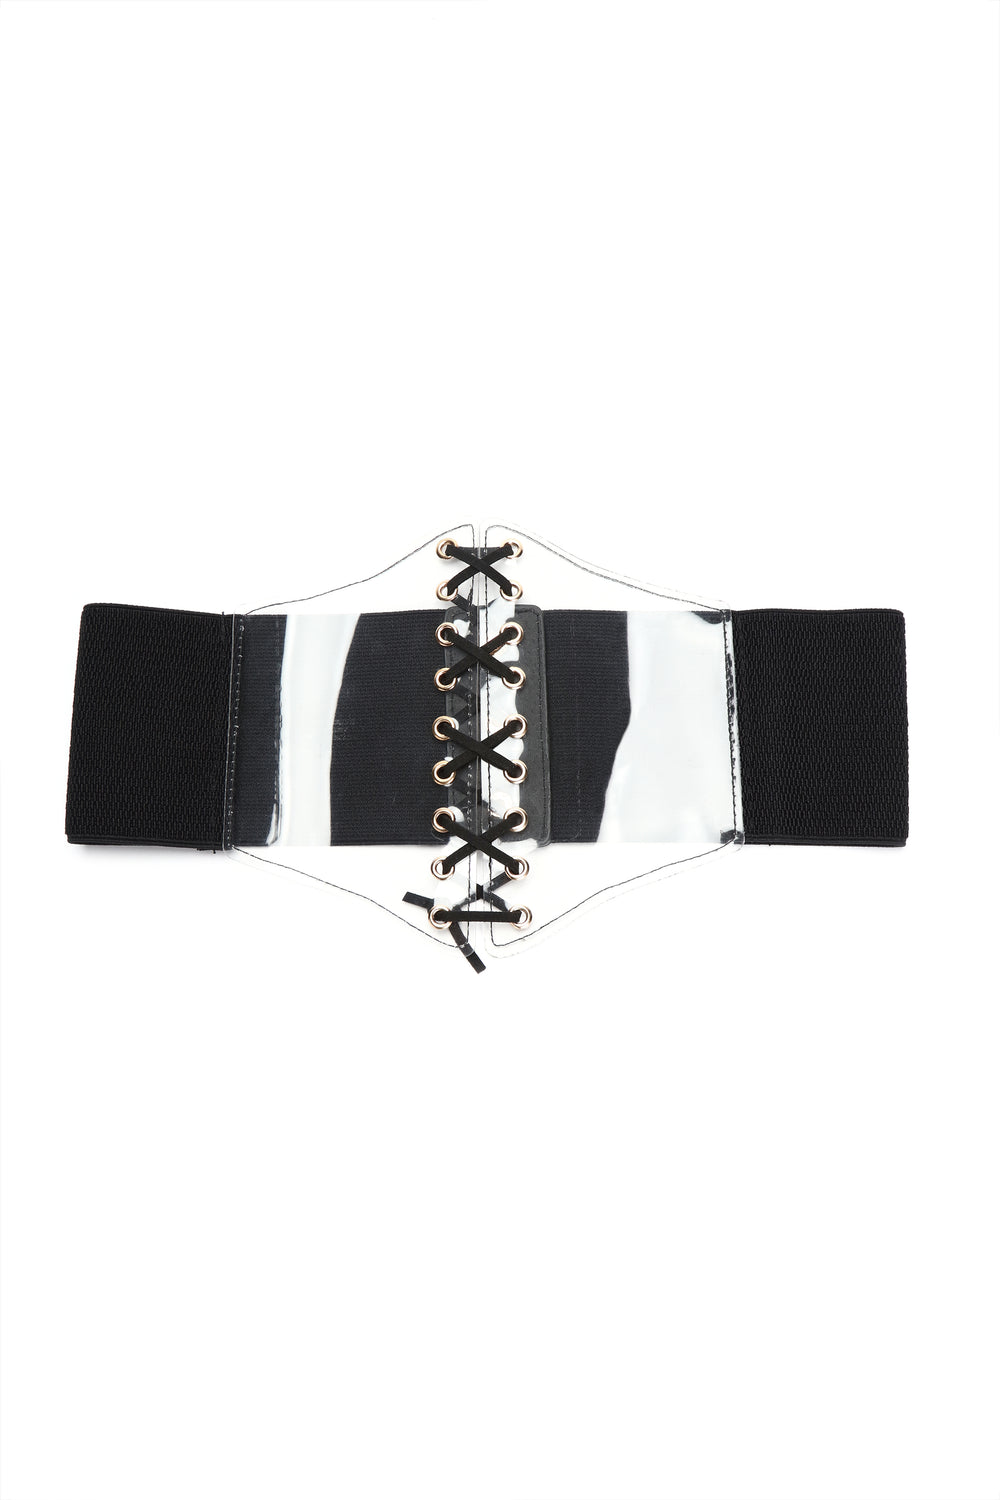 See Right Through You Belt - Black/Clear